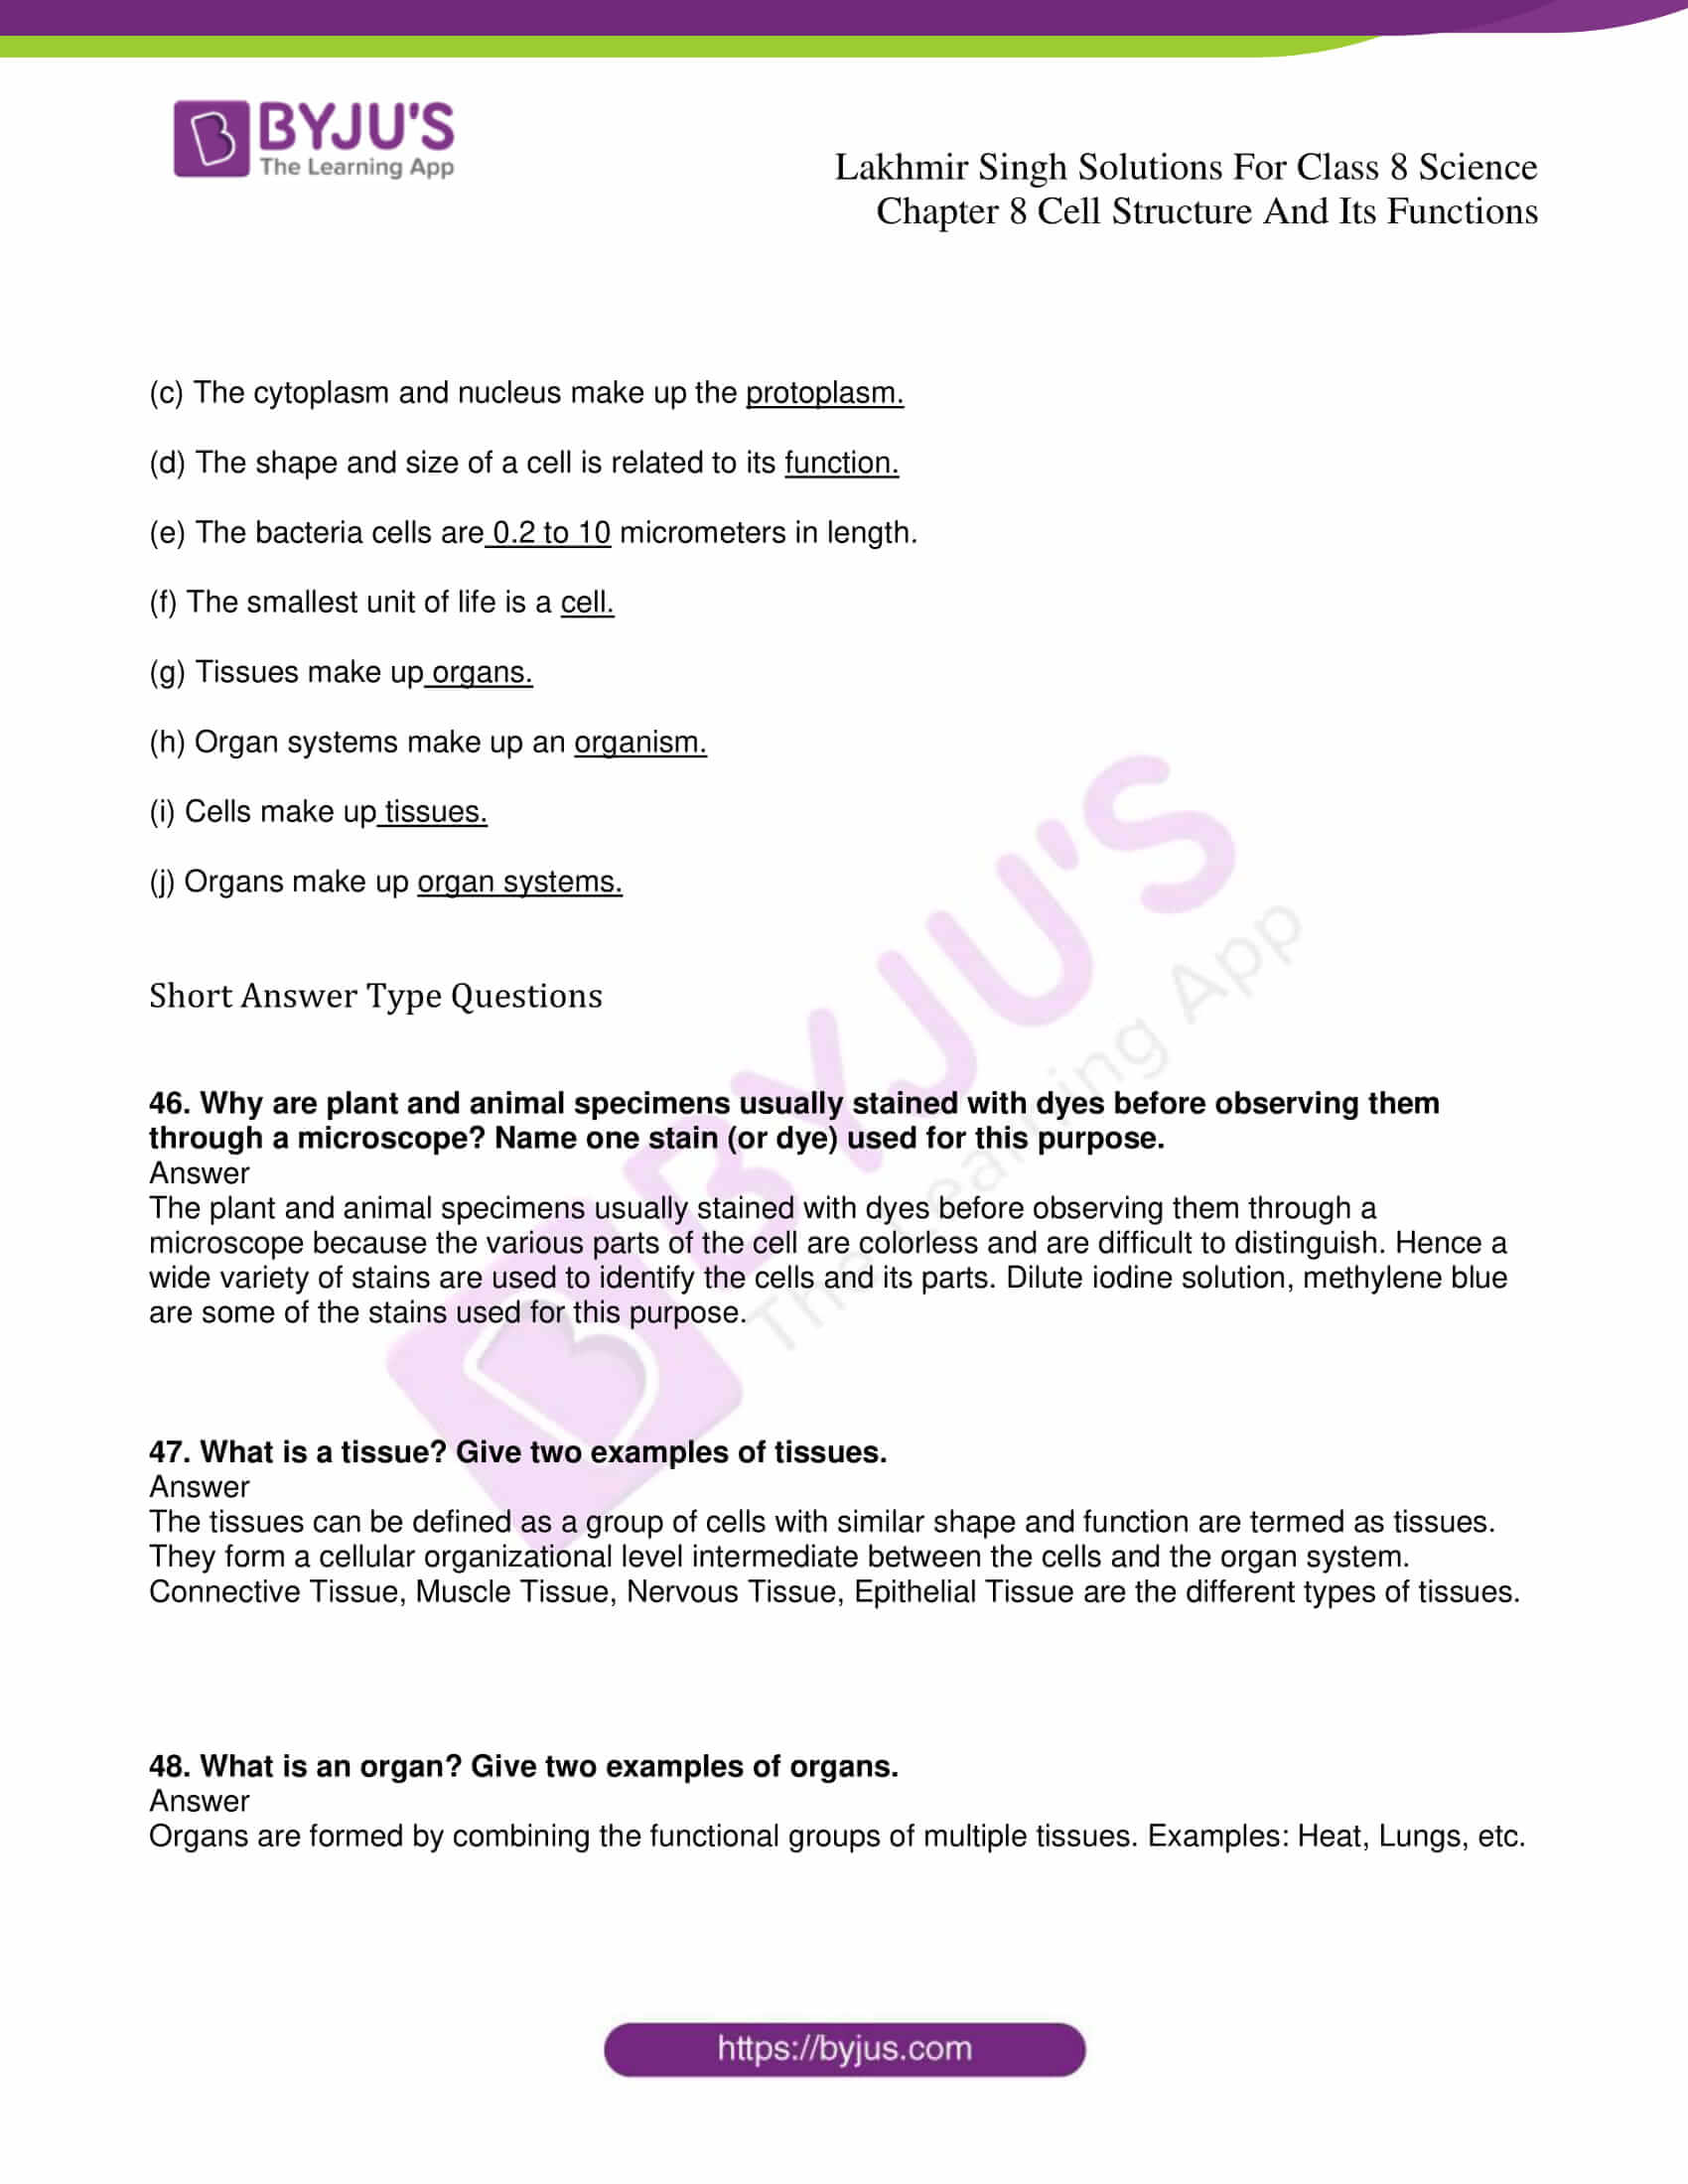 lakhmir singh solutions for class 8 science chapter 8 8